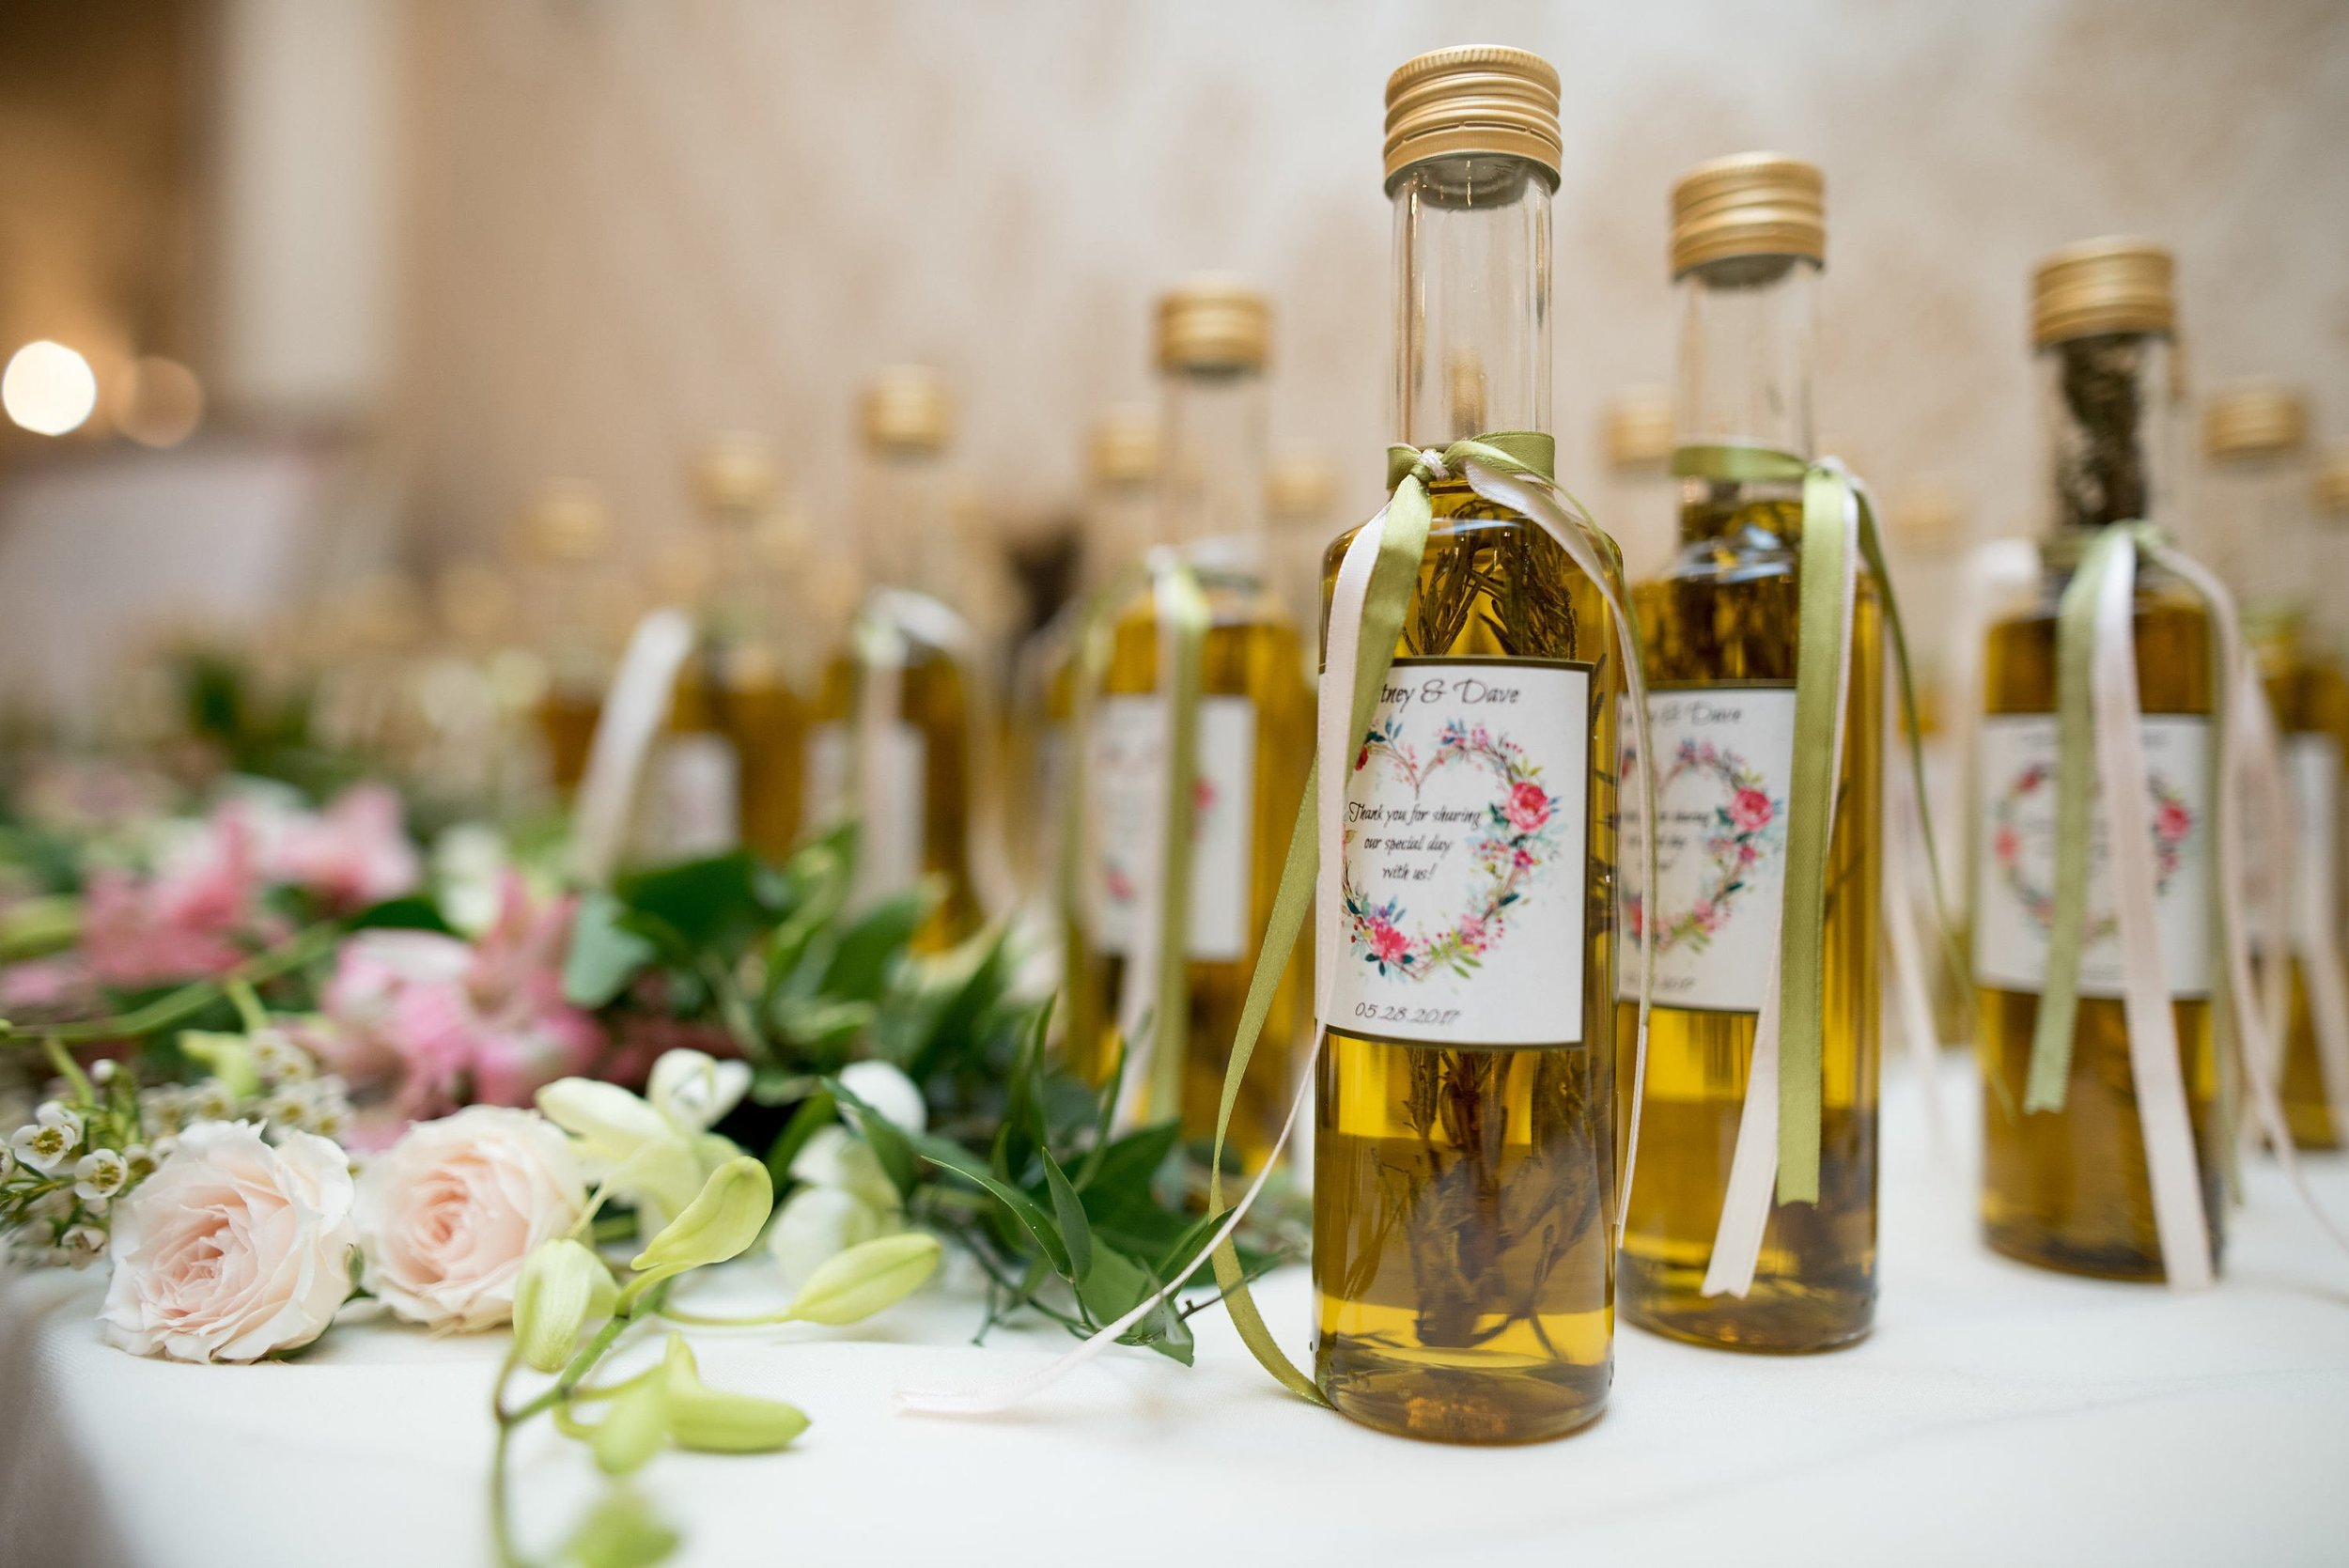 75 Olive Oil Favors, Rosemary Infused Wedding Birthday.jpg